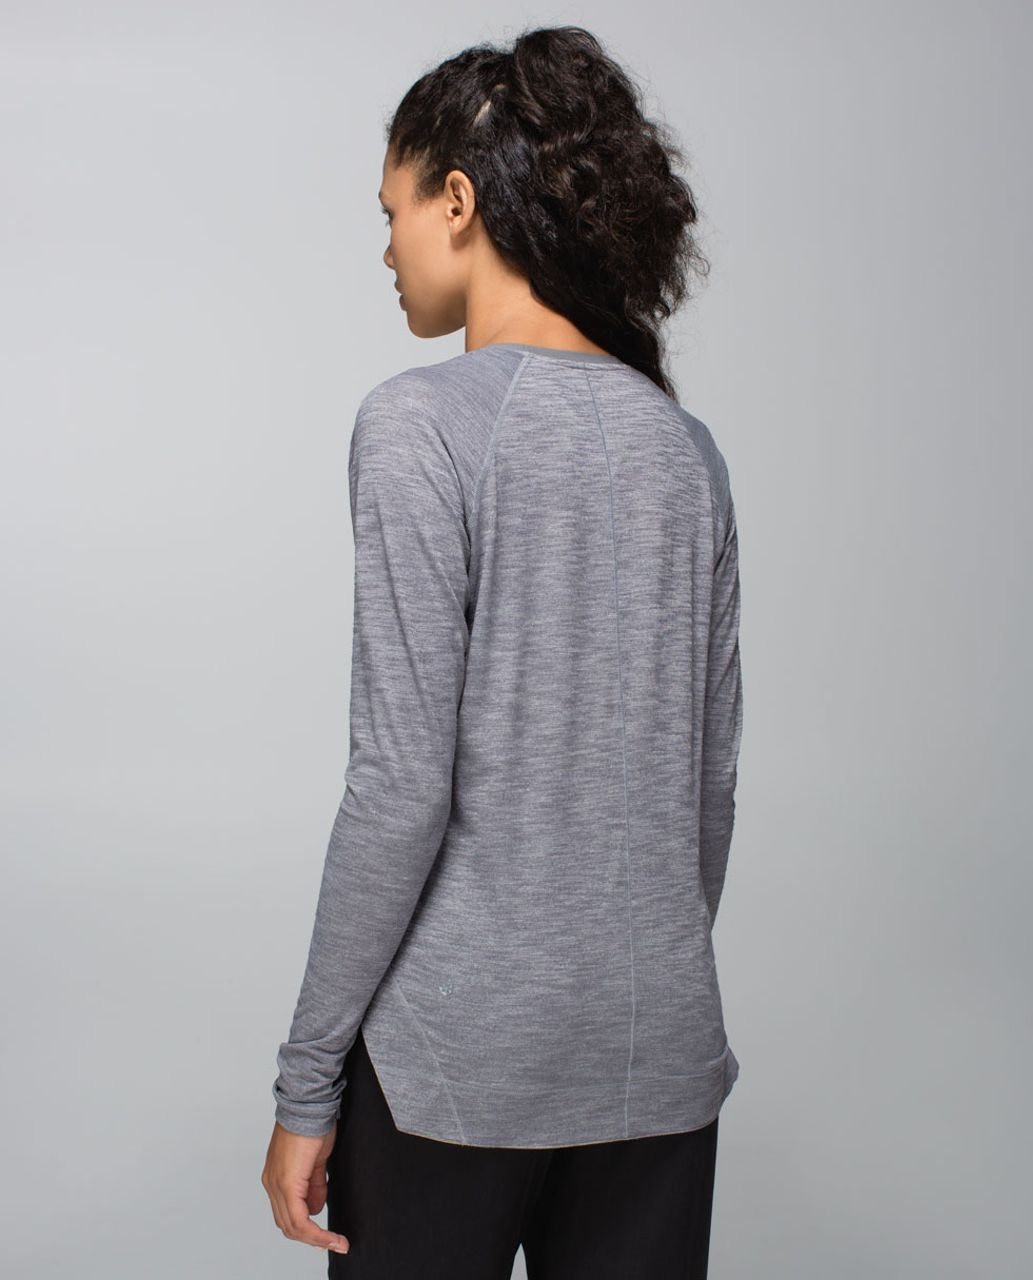 Lululemon Layered Long Sleeve Tee - Heathered Slate / Slate / Almost Pear